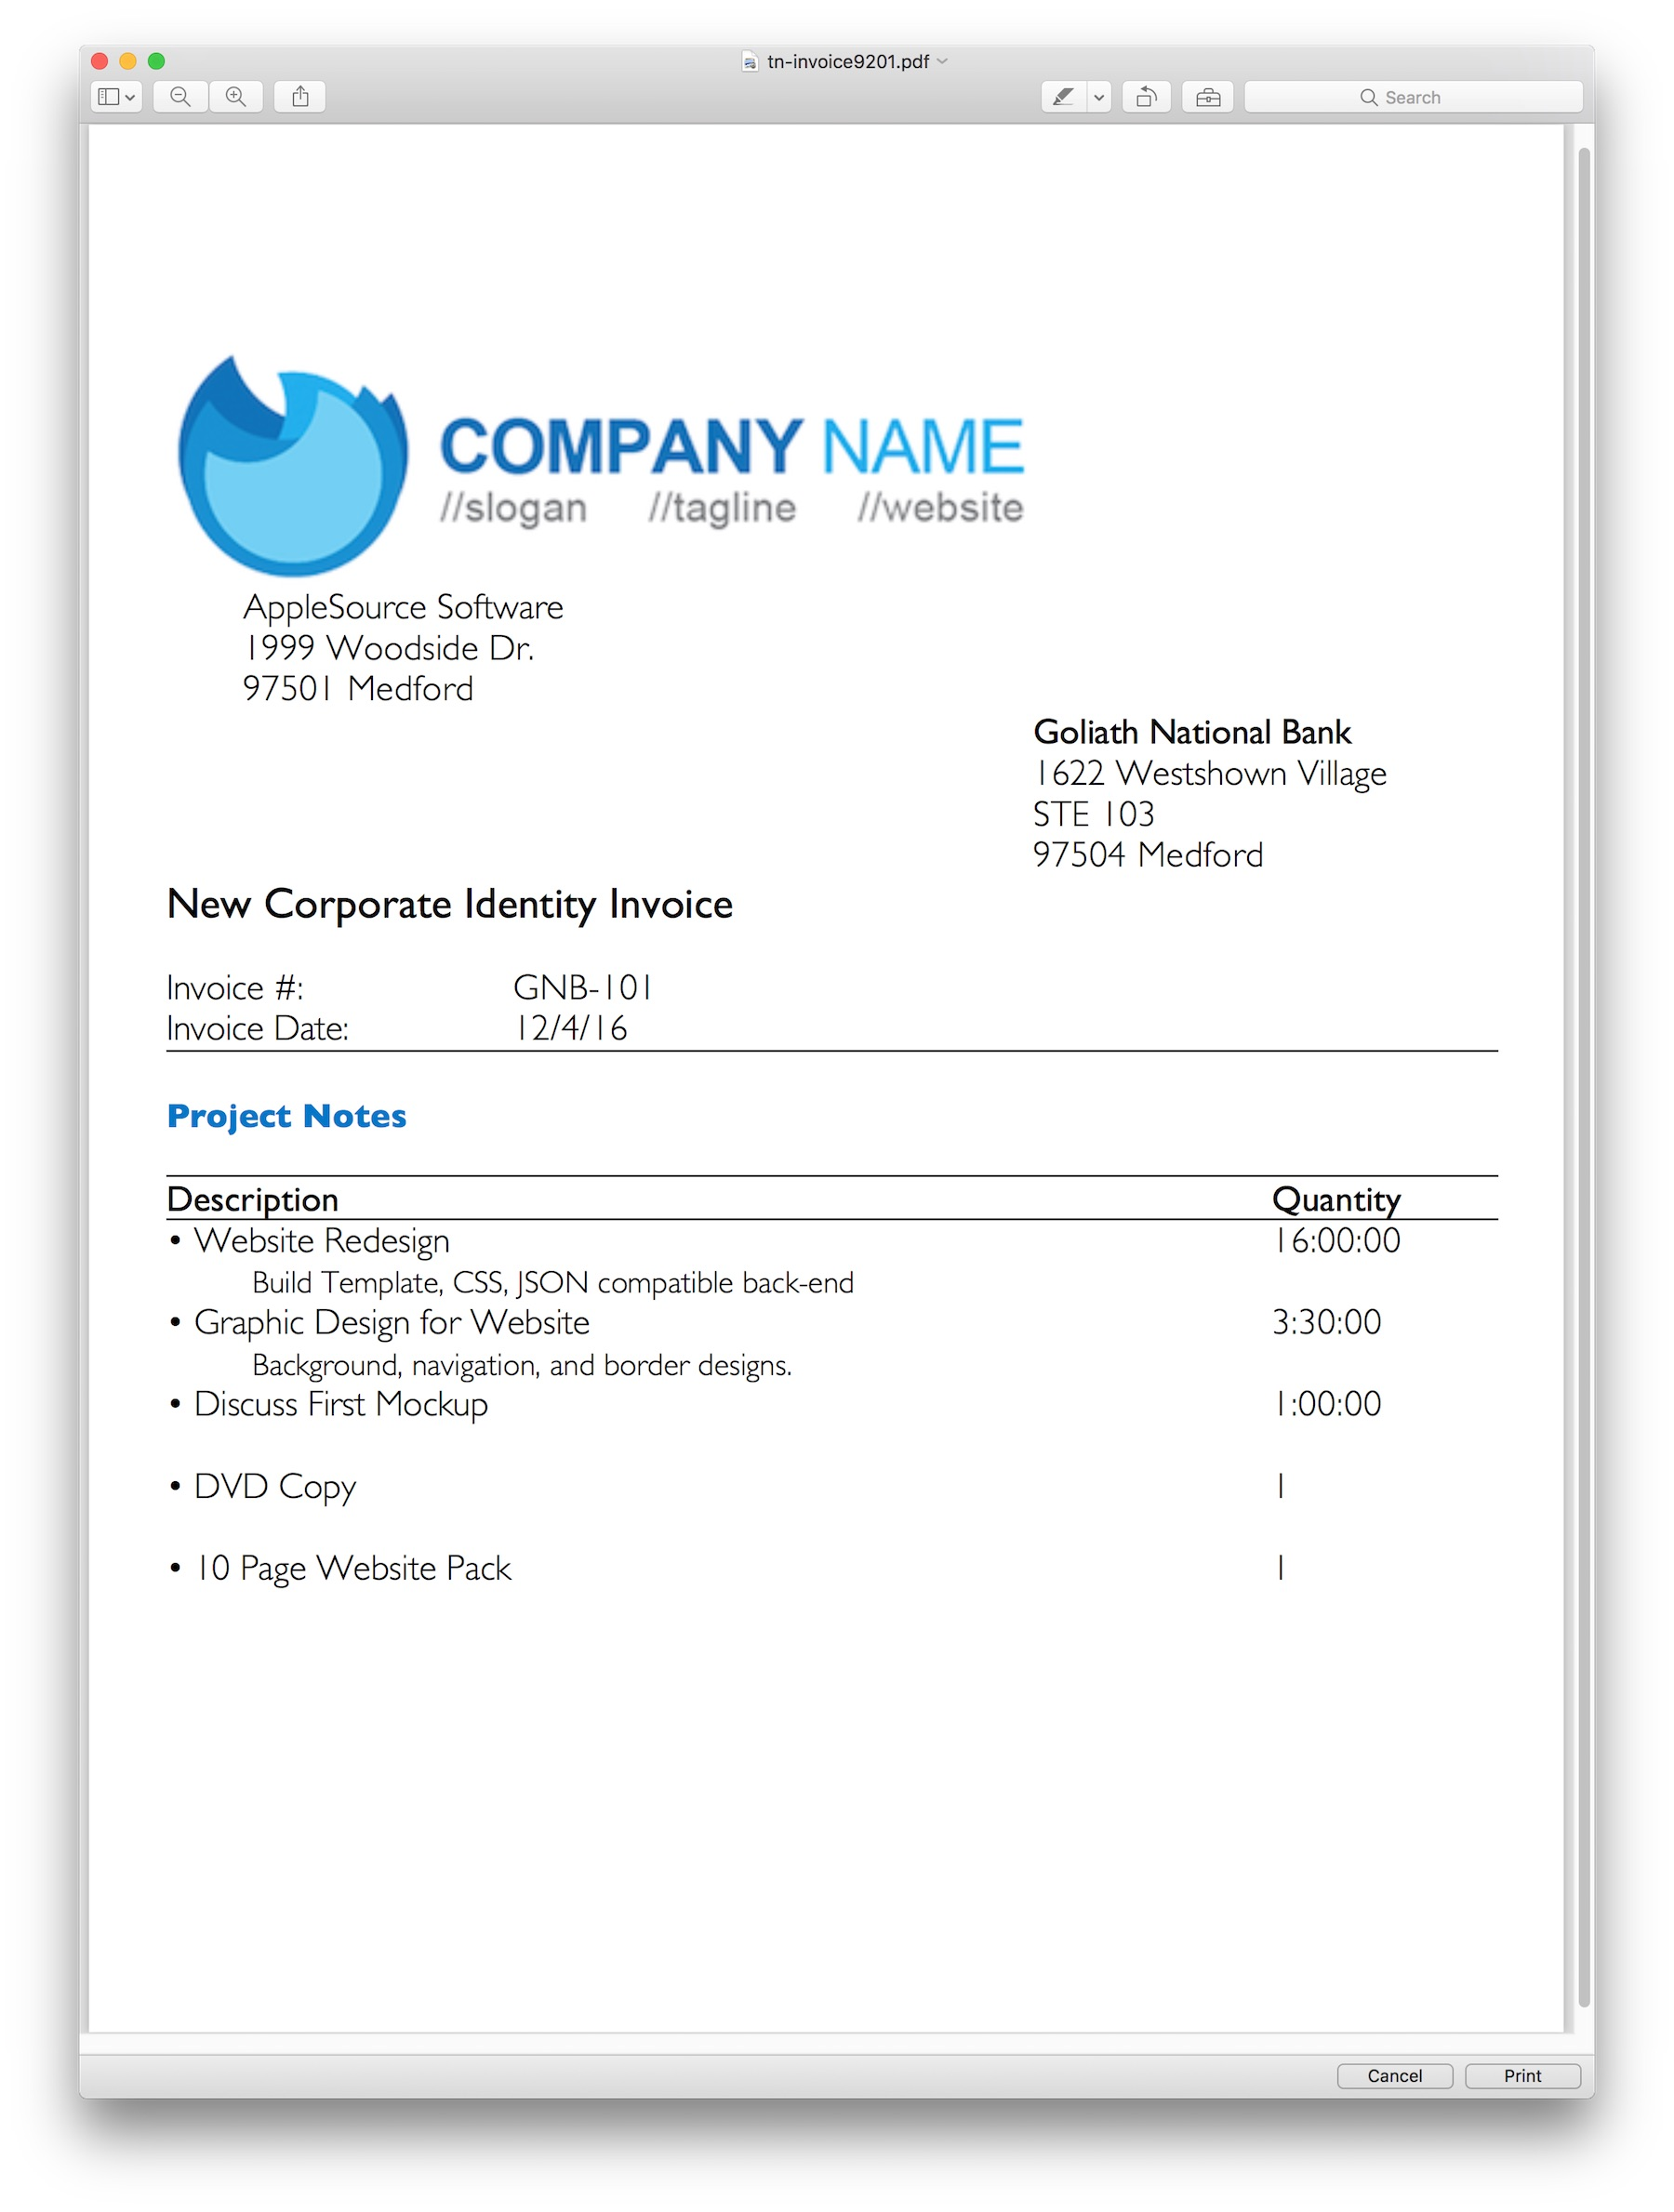 AppleSource Software TimeNet Invoice Templates Time Tracking - Css invoice template